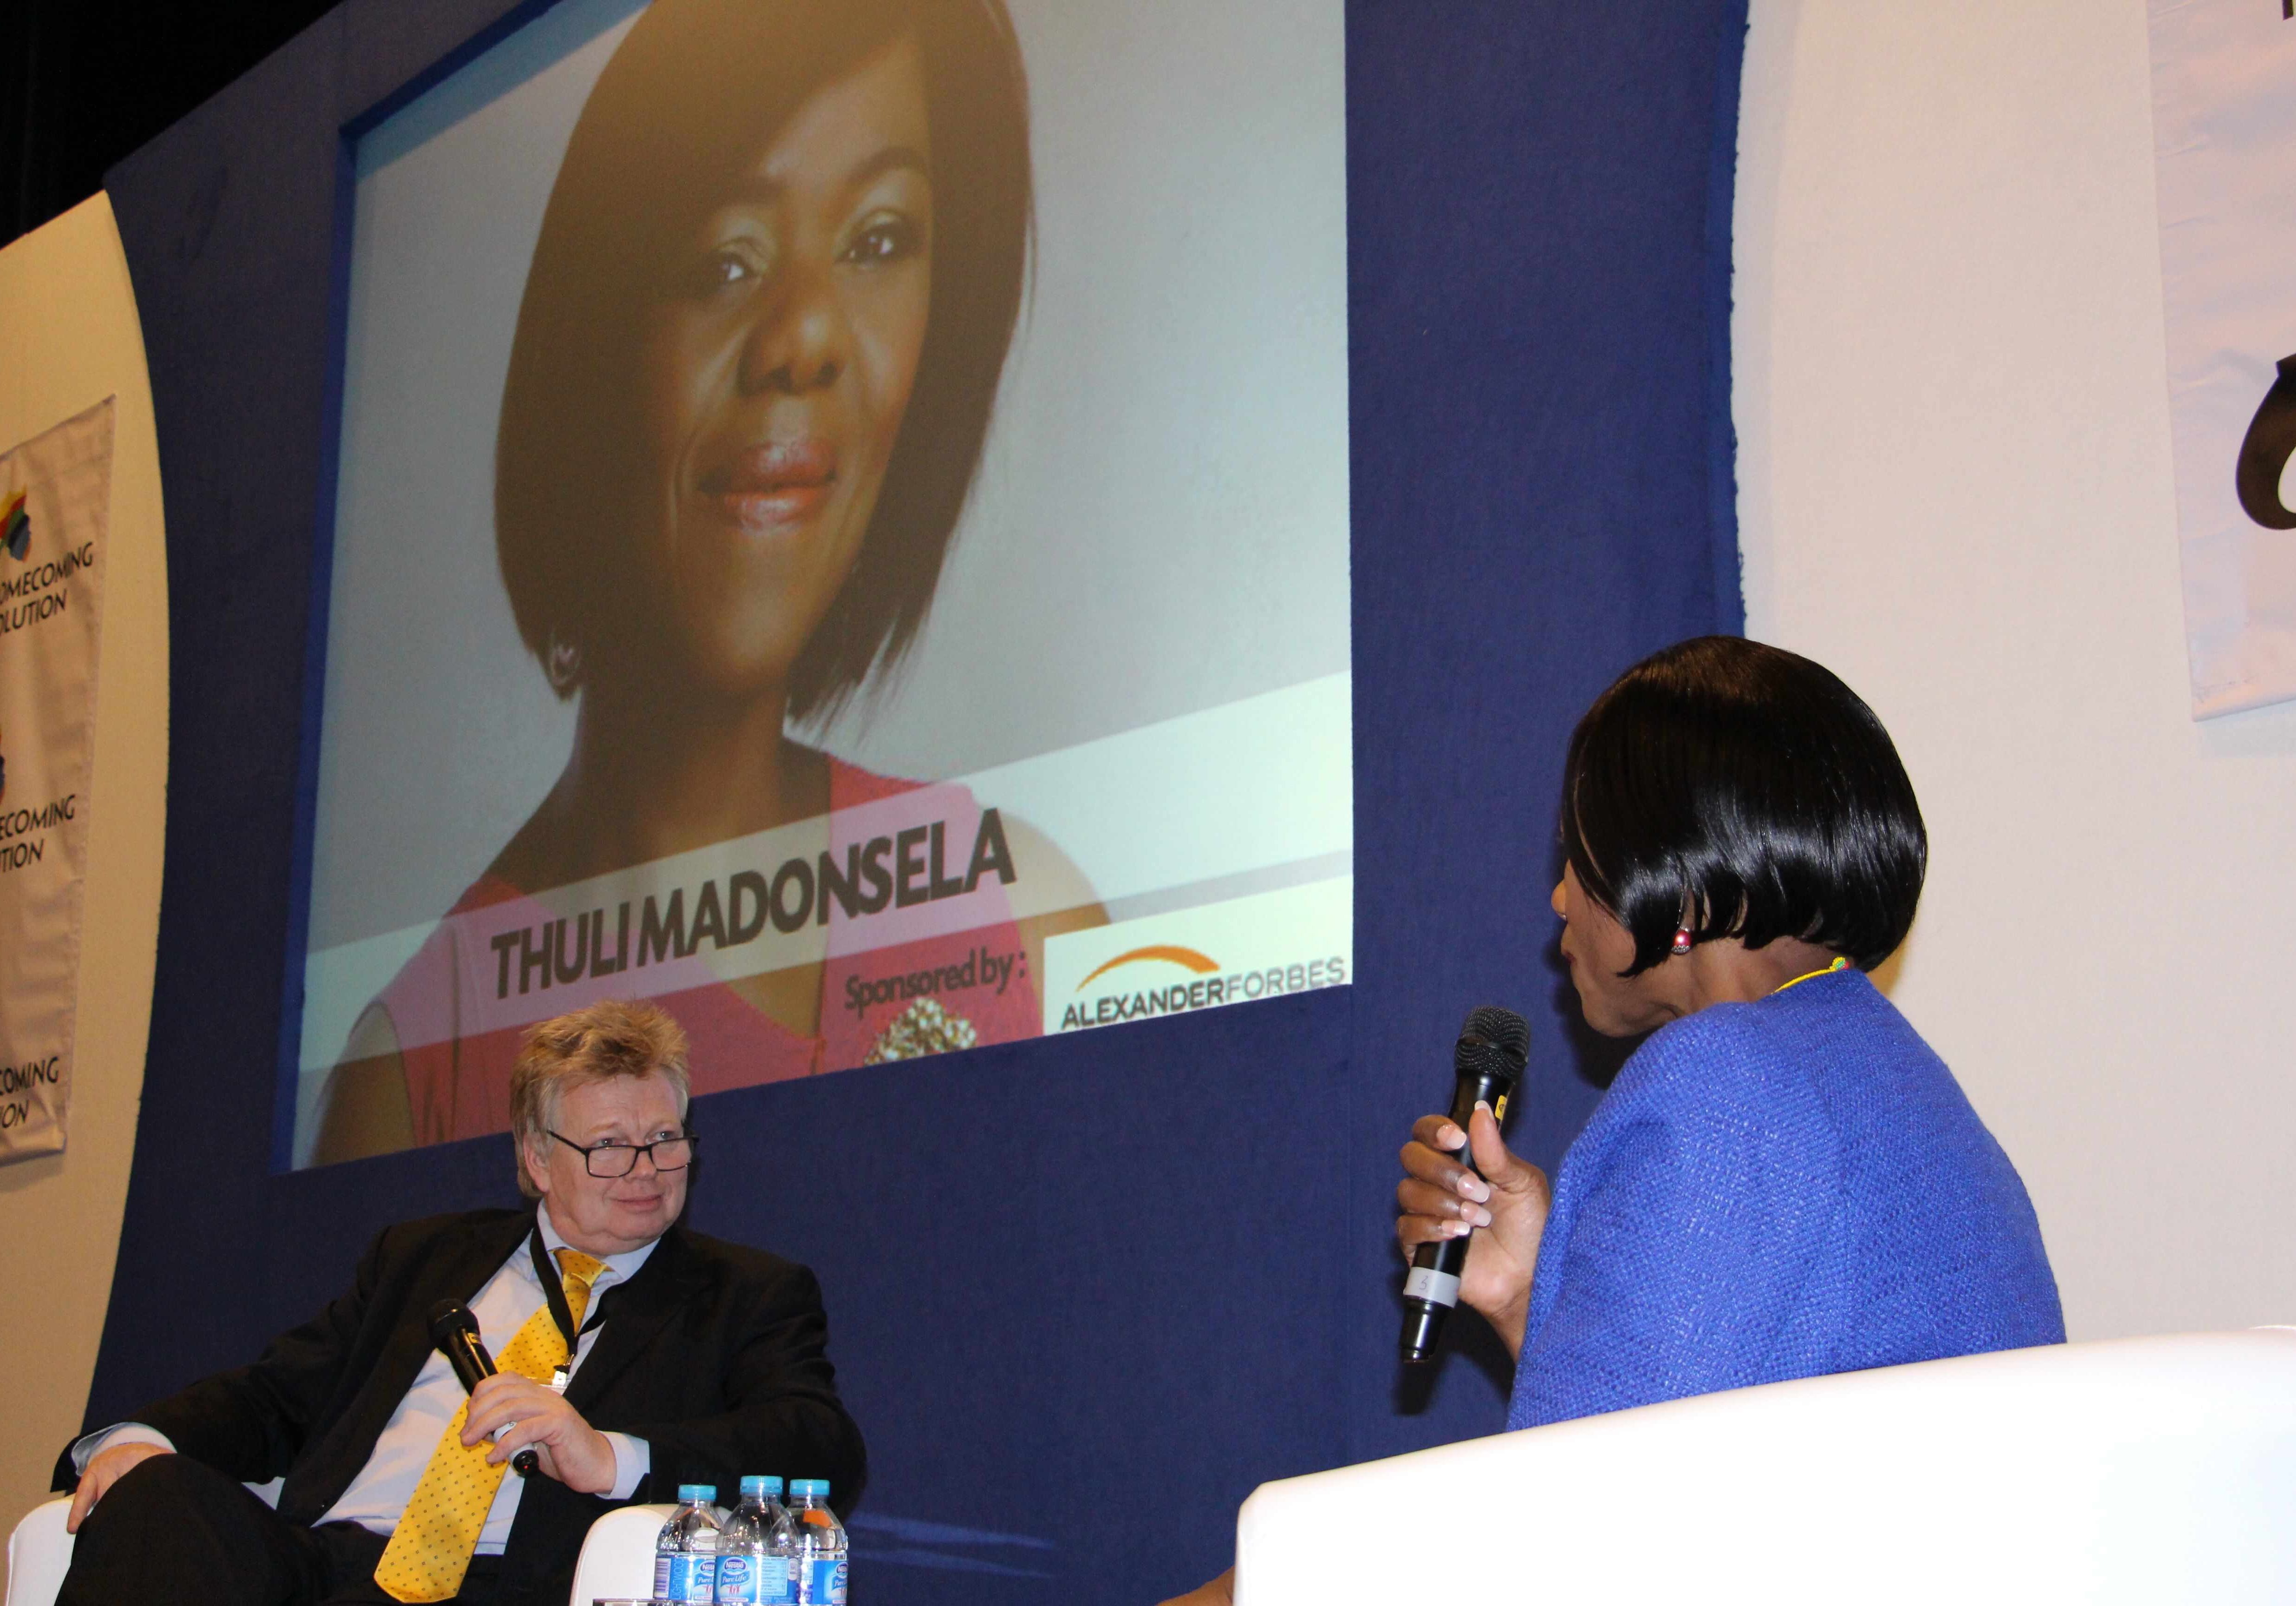 Peter-Burdin interviewing the South African Public Protector Thuli Madonsela.